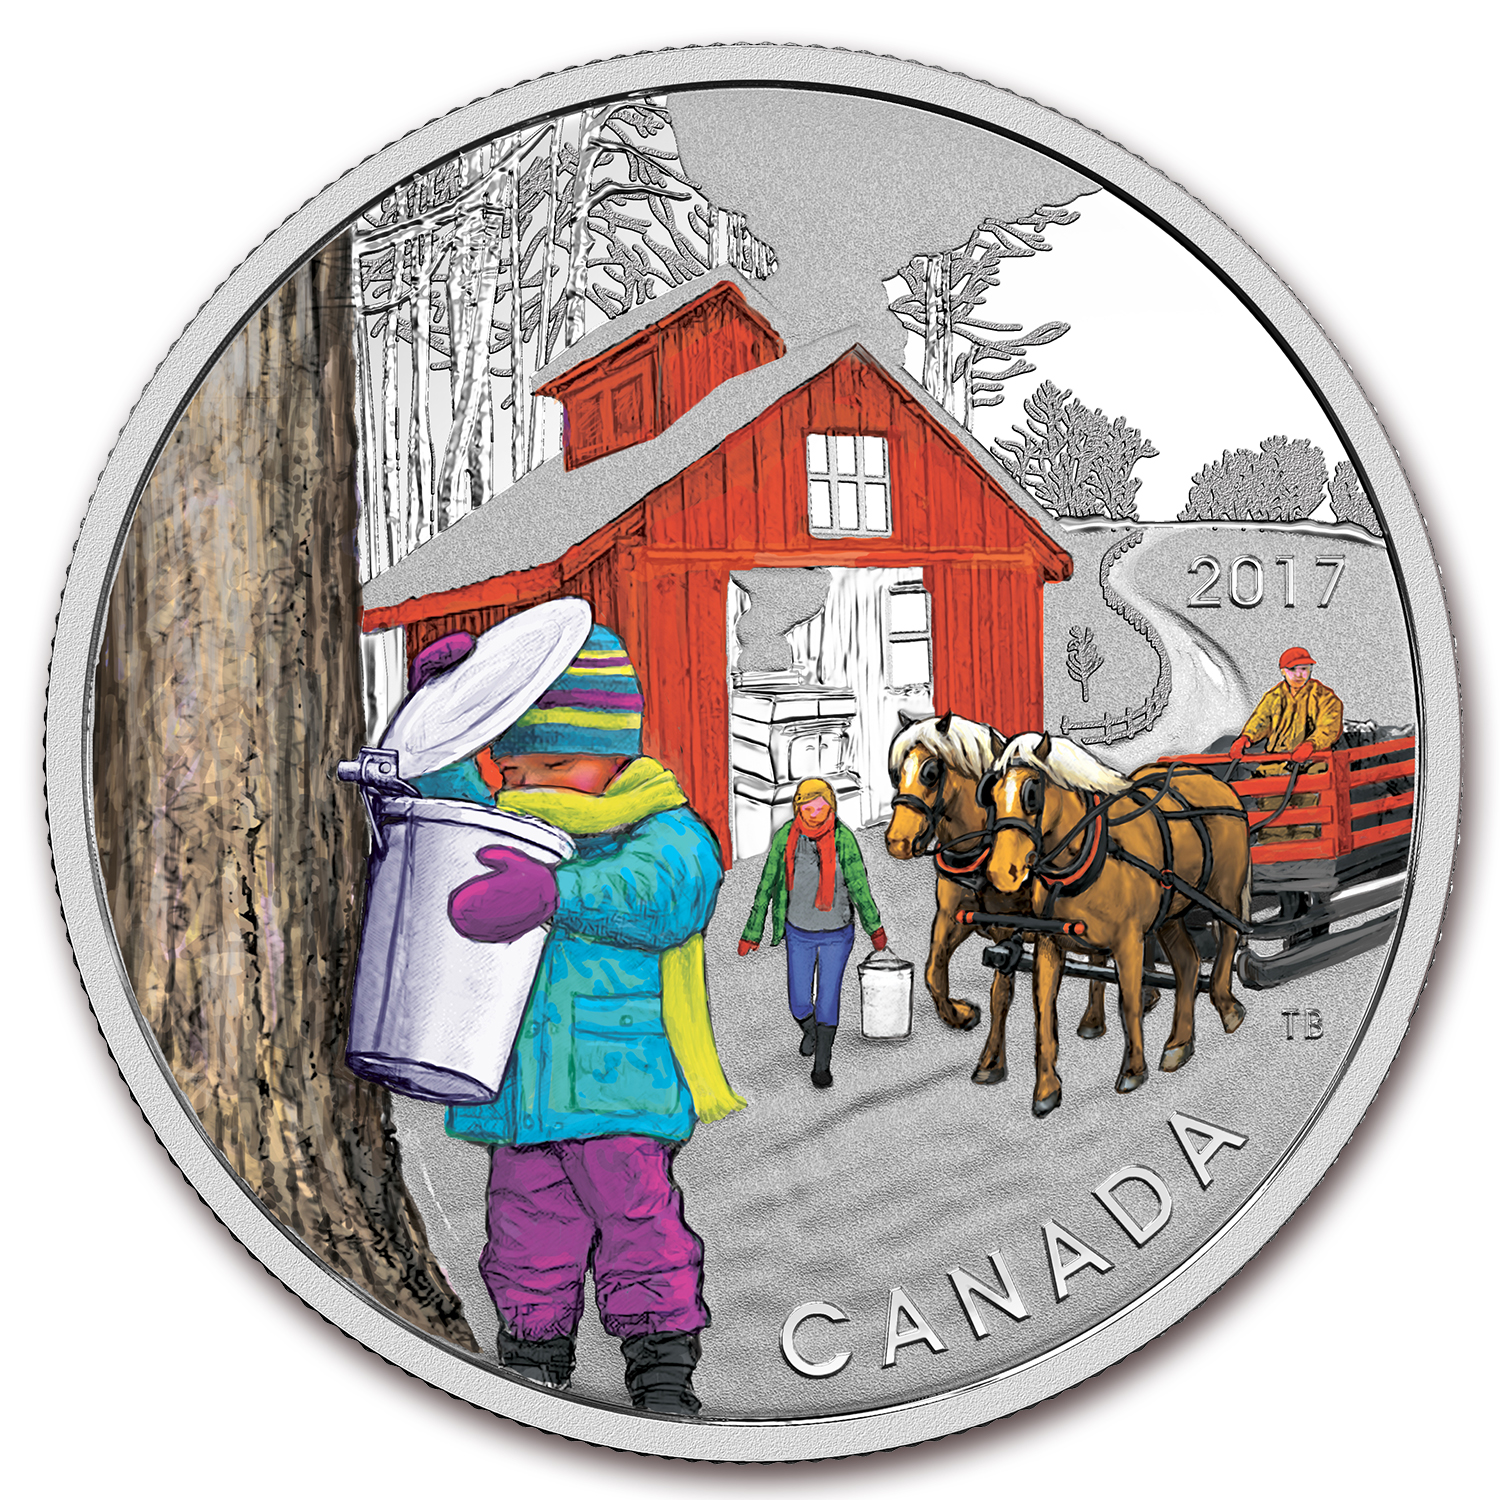 2017 Canada 1/2 oz Silver $10 The Sugar Shack Proof